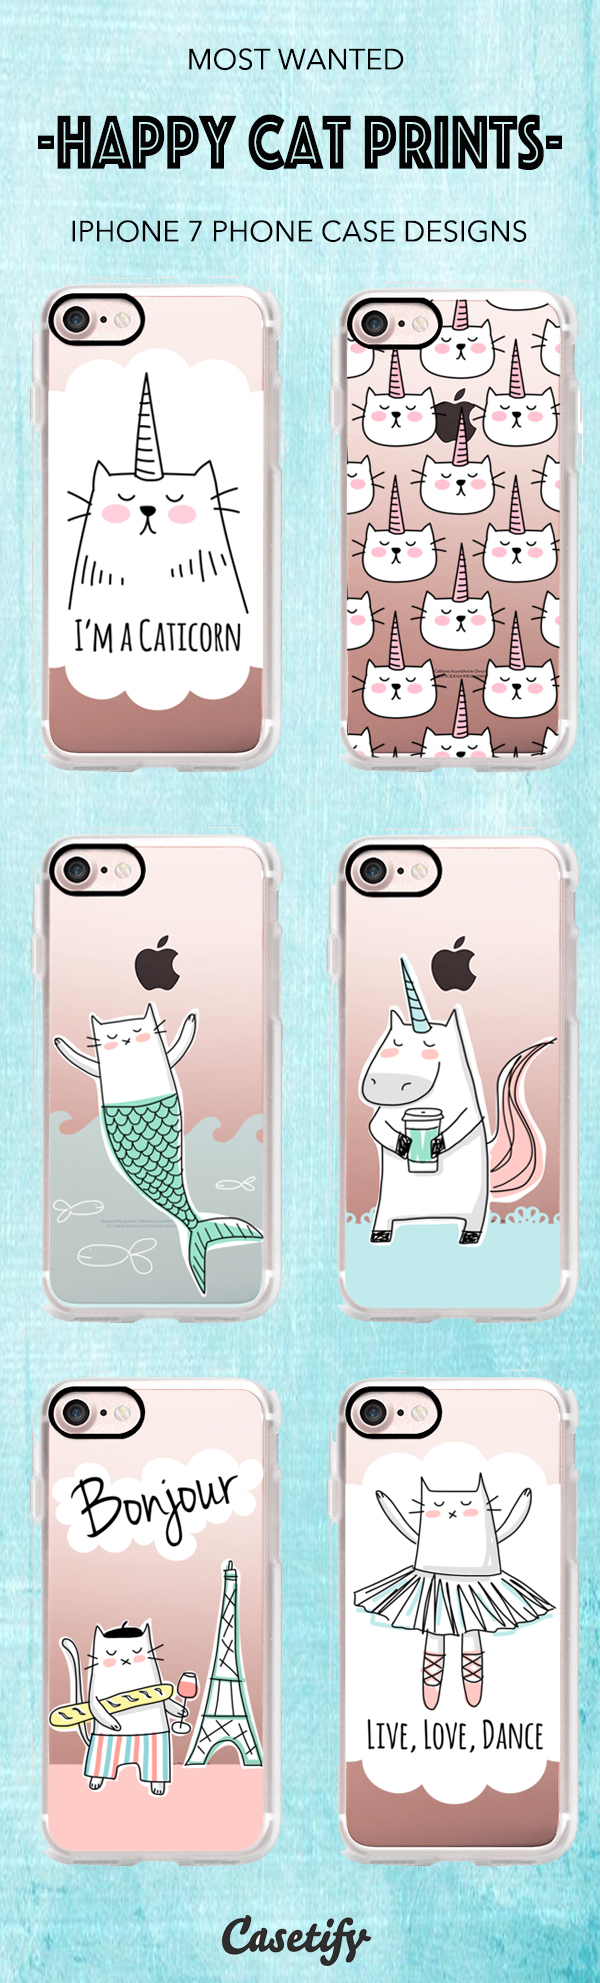 Shop these Most Wanted Happy Cat Prints iPhone 7 and